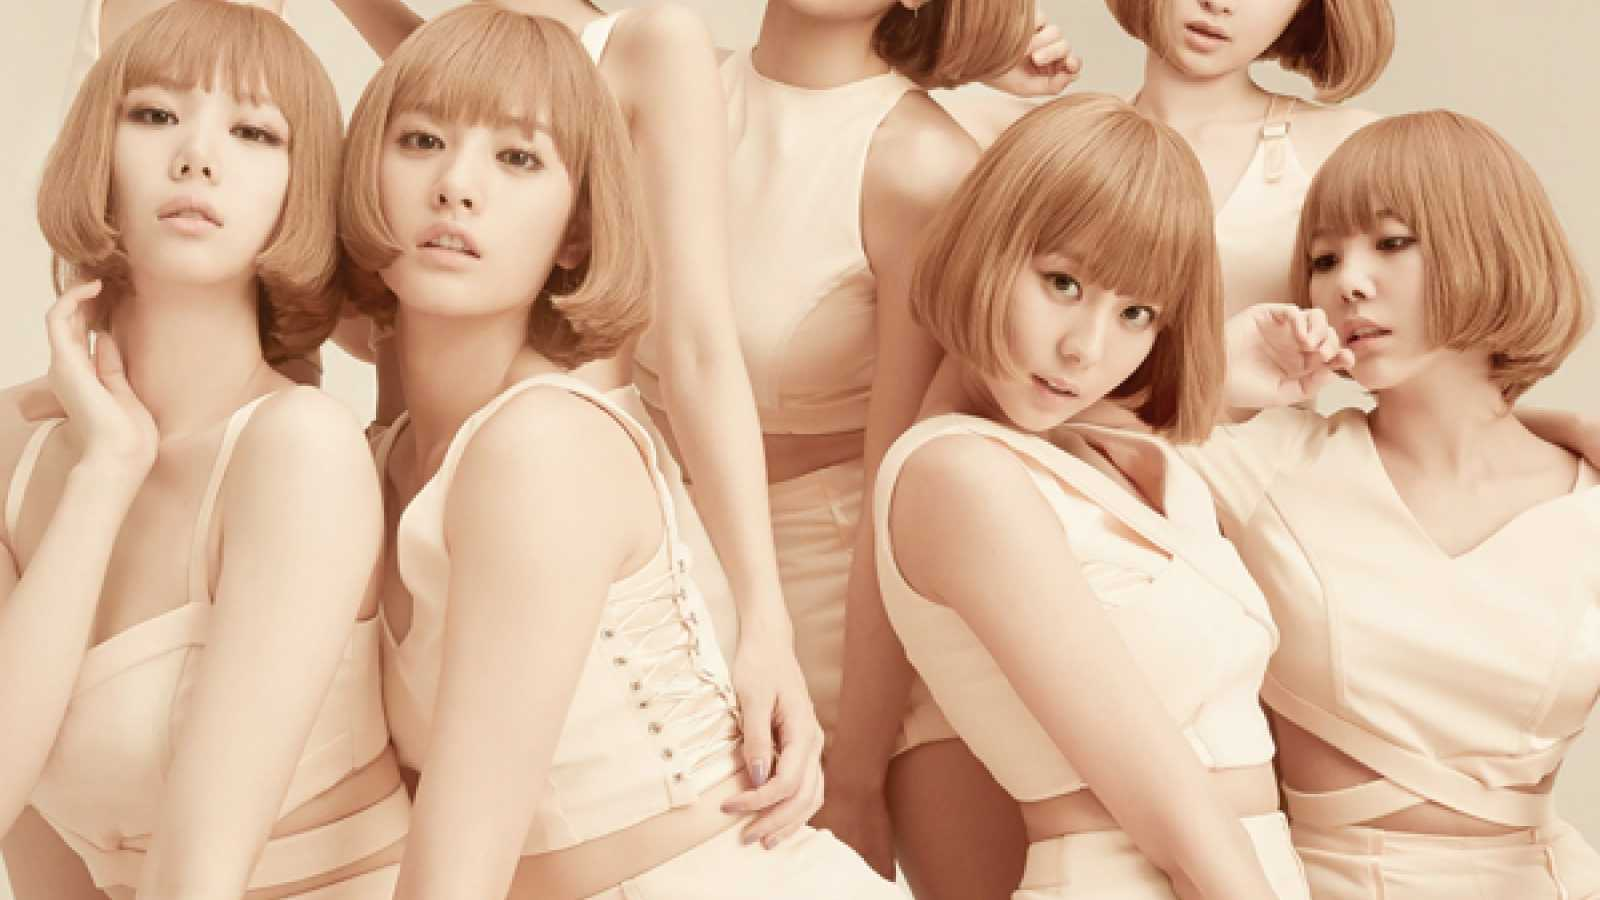 After School © Pledis Entertainment. All rights reserved